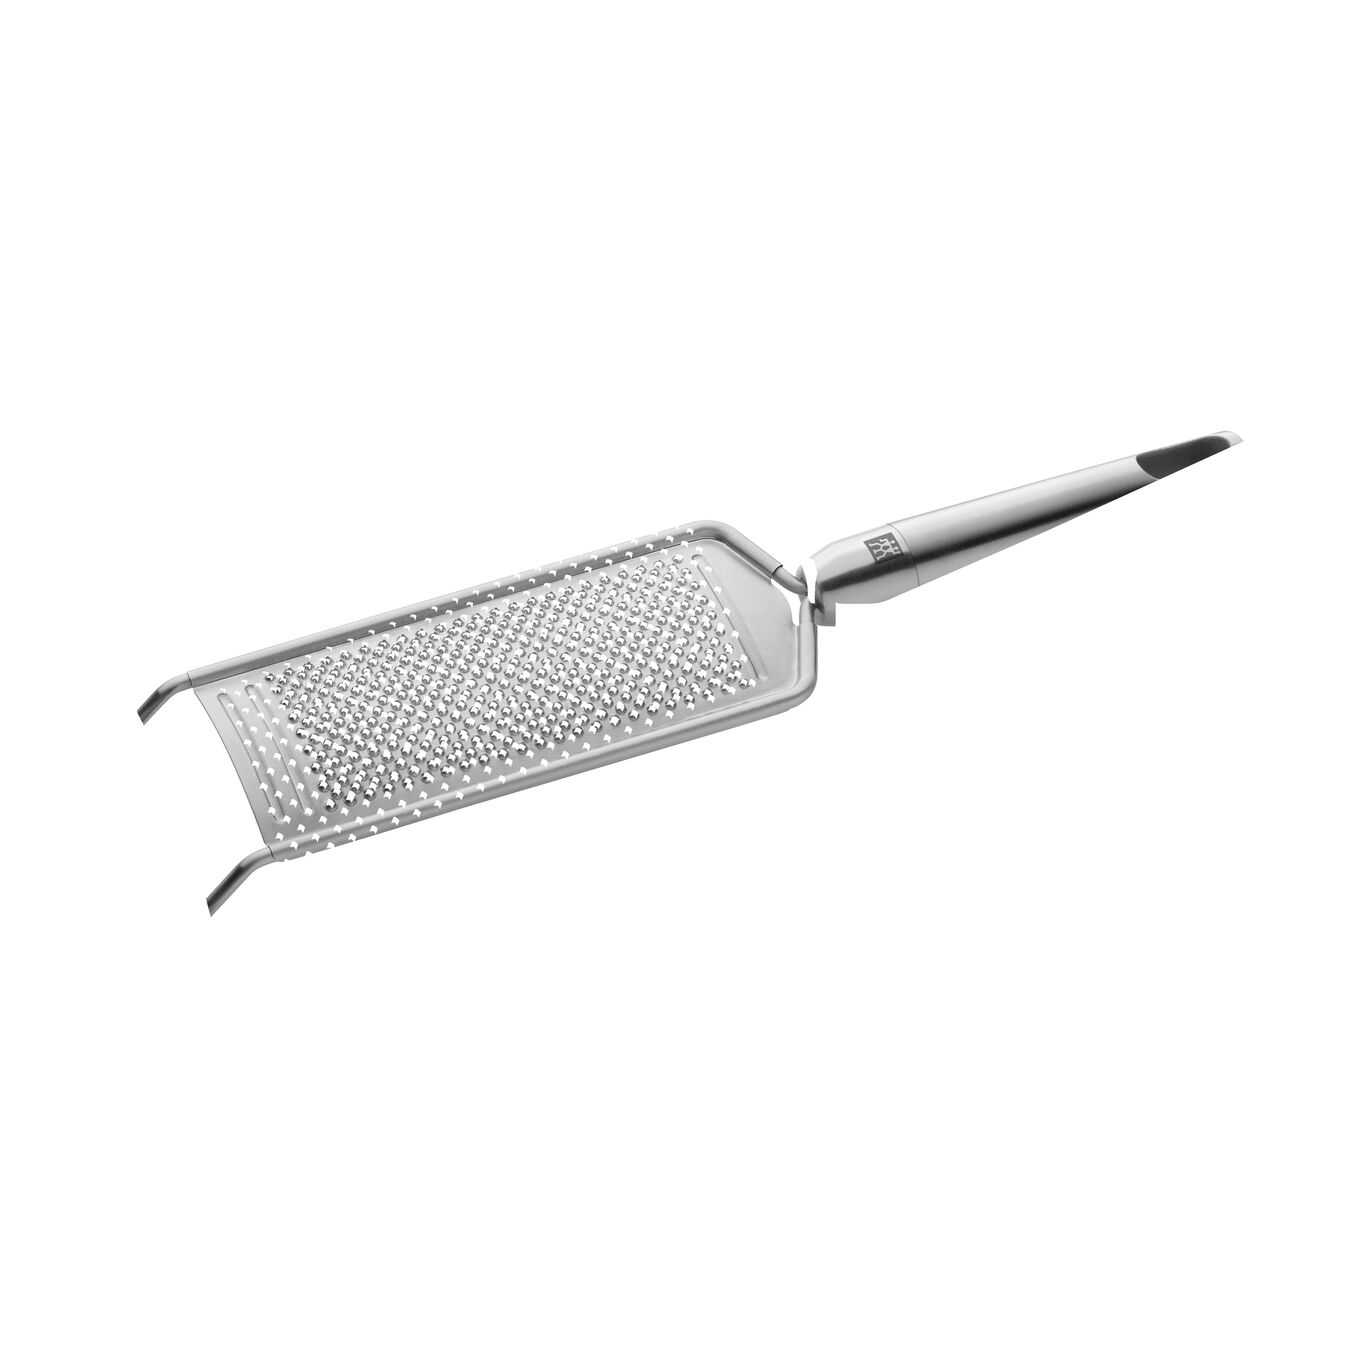 18/10 Stainless Steel, Grater,,large 1